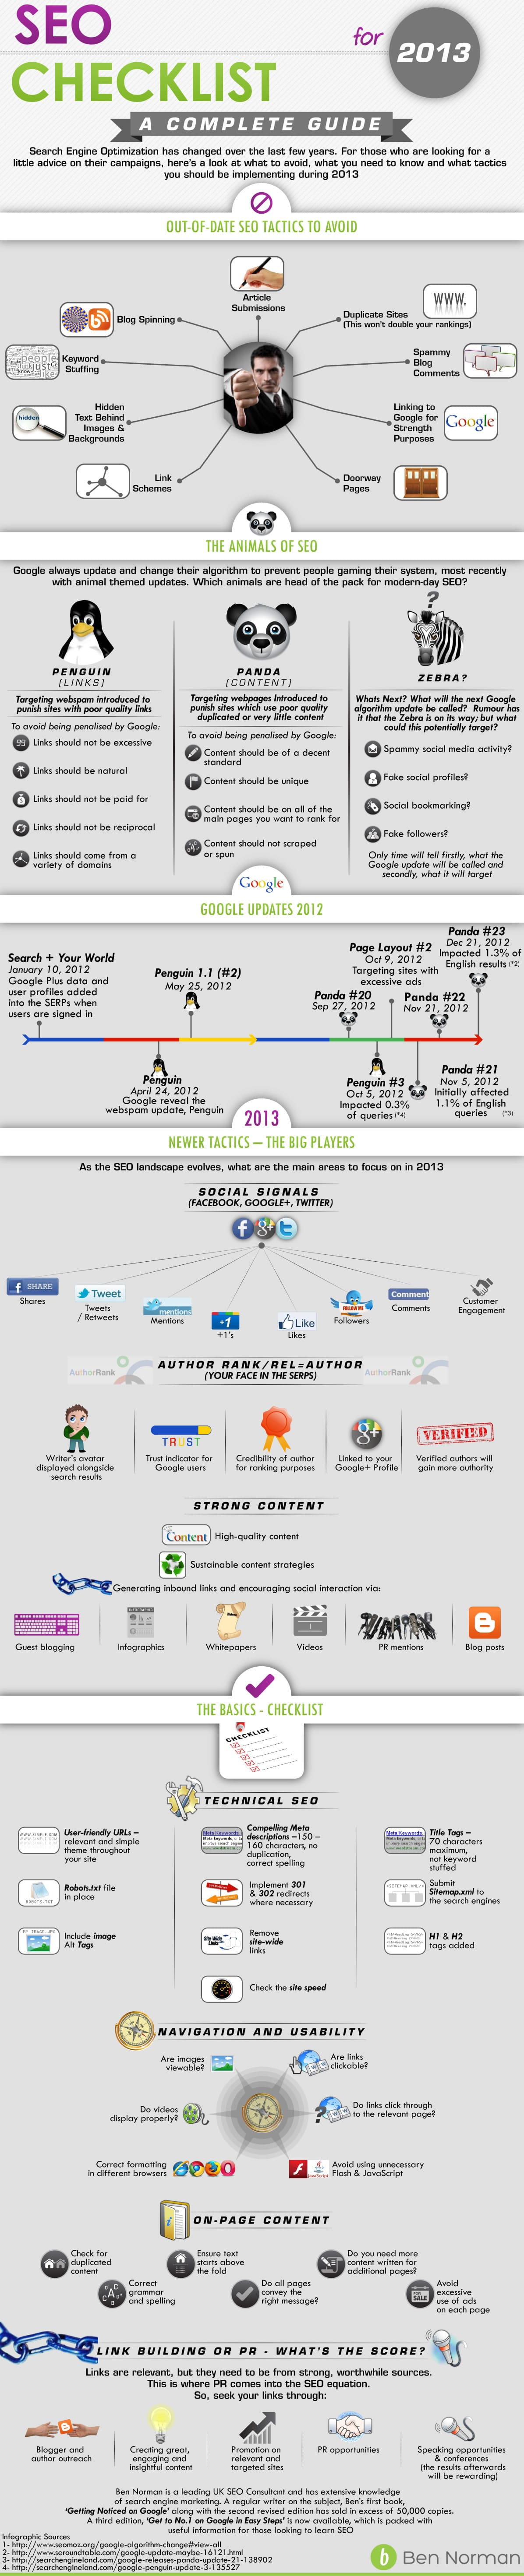 Ultimate SEO Checklist & Guide For 2013 [Infographic]